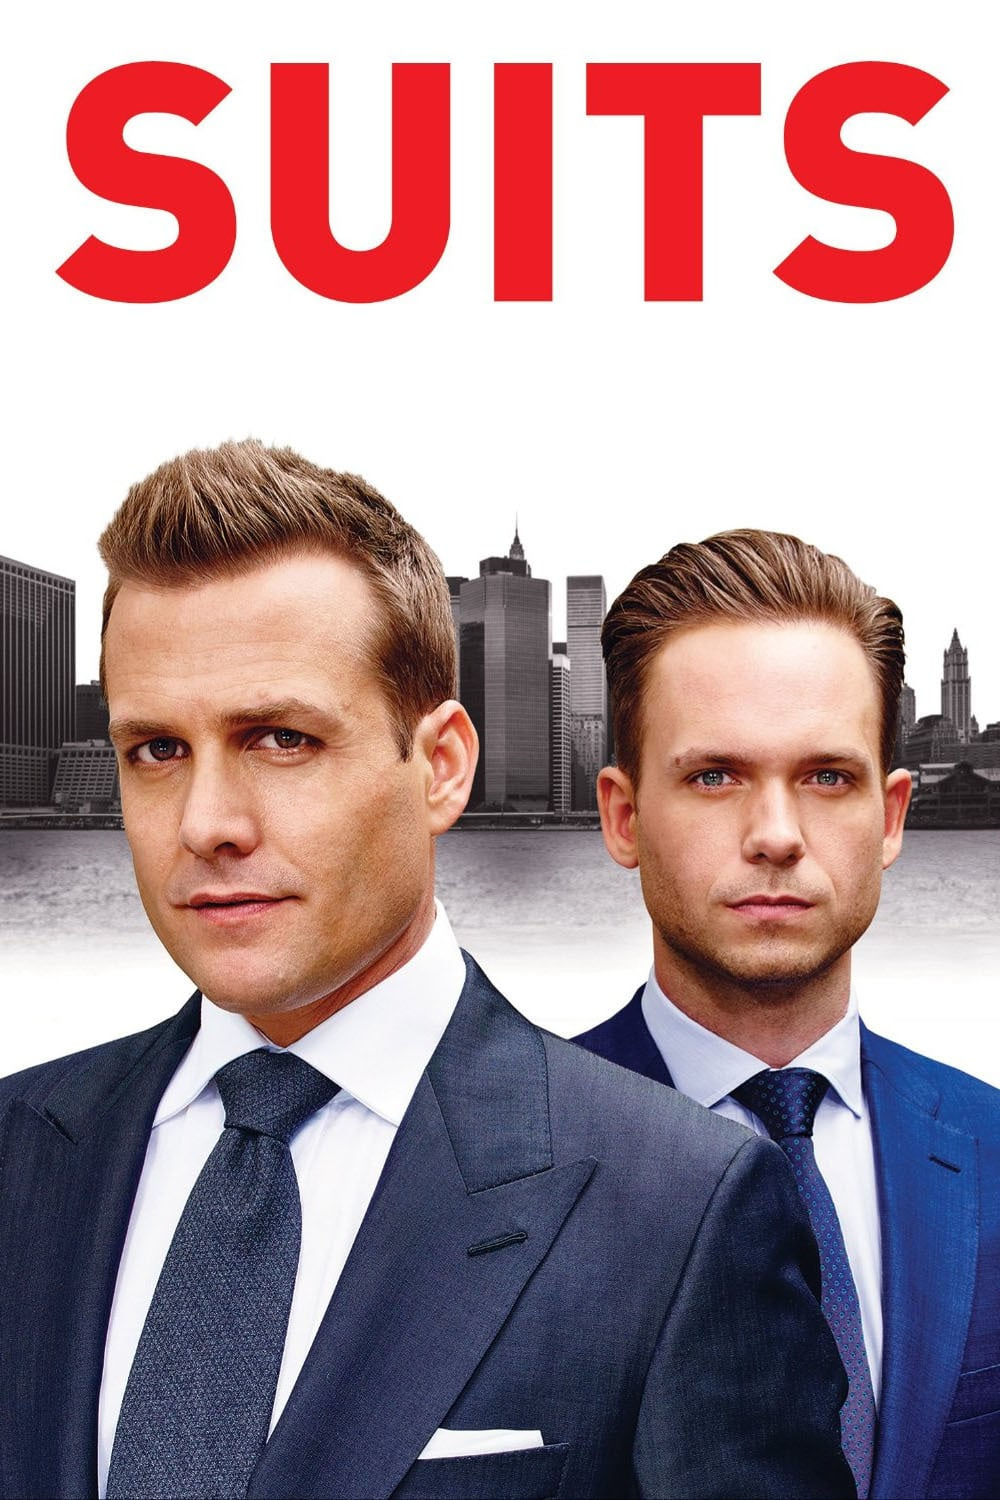 Suits rating